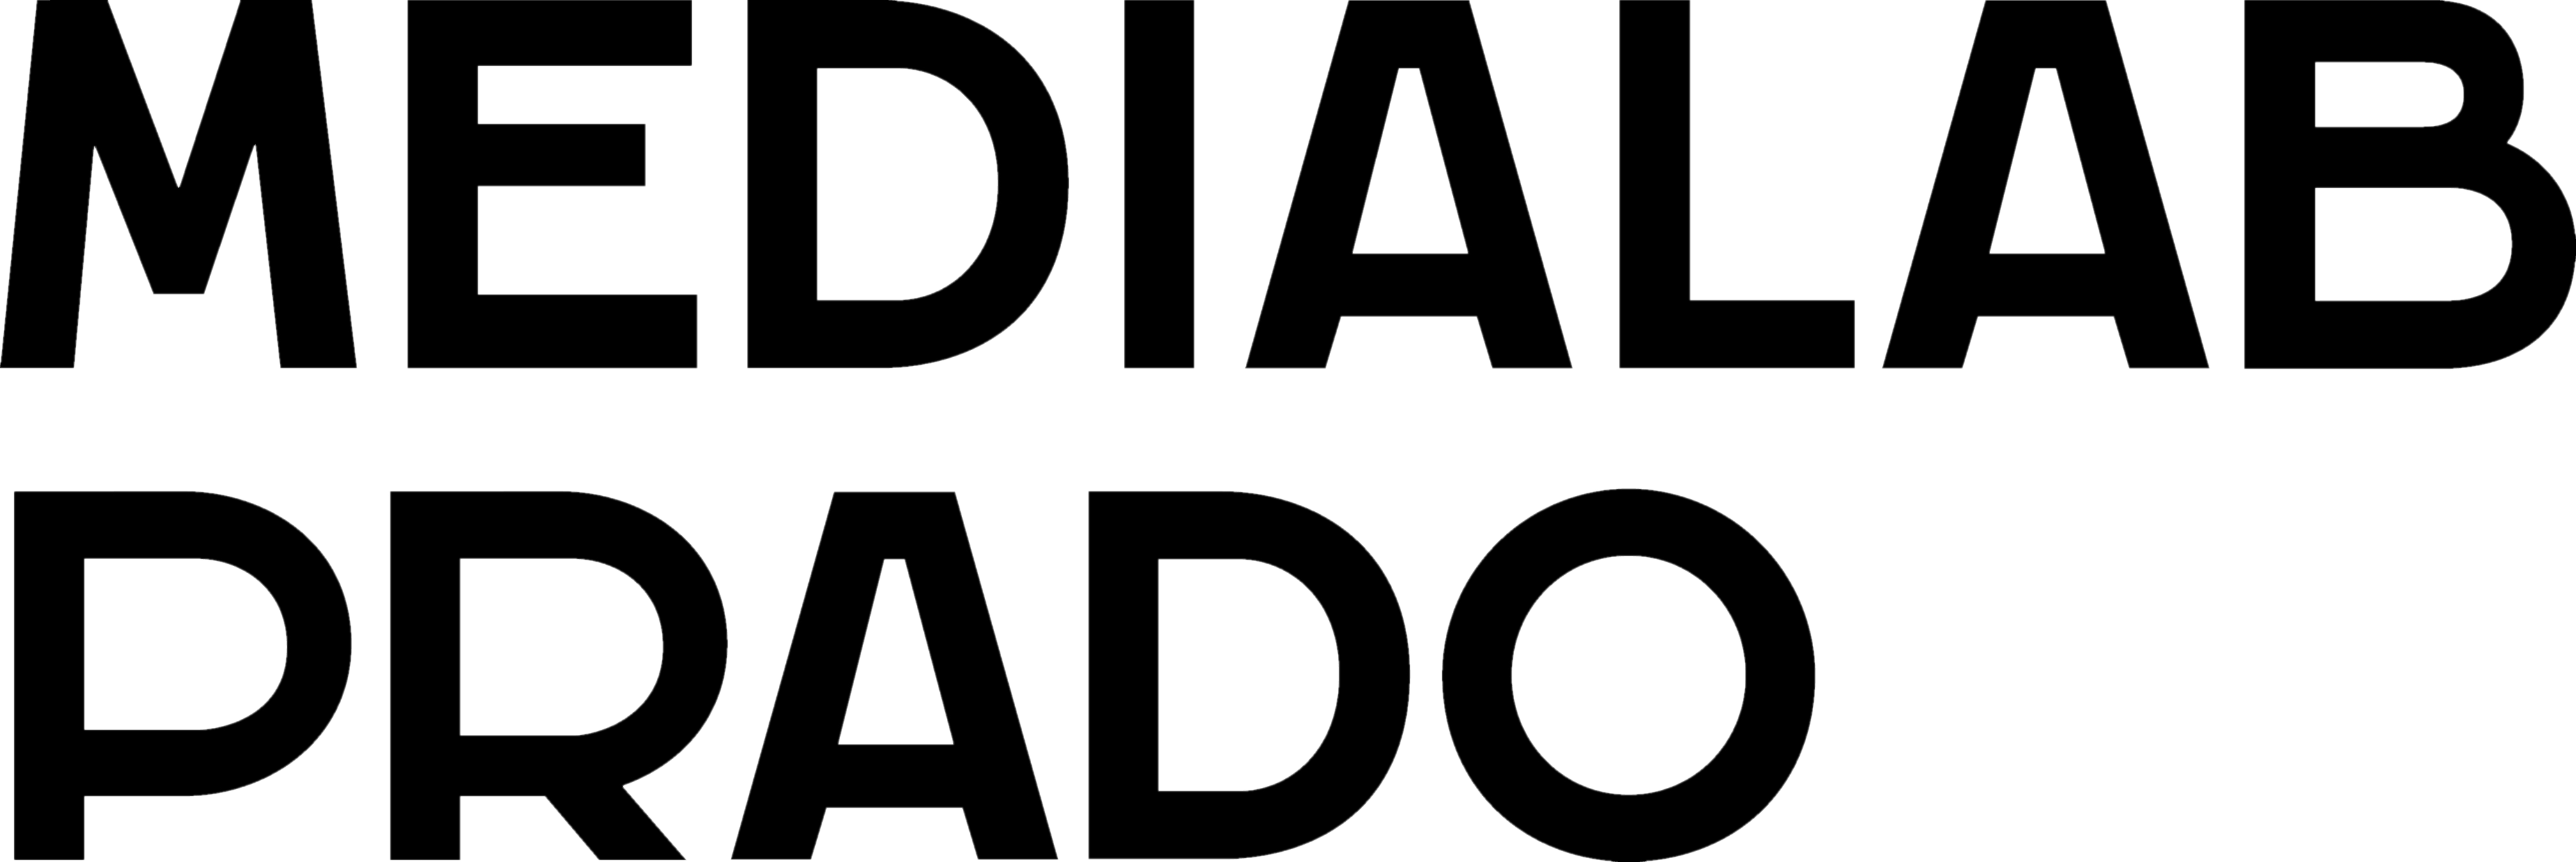 Media Lab Prado logo